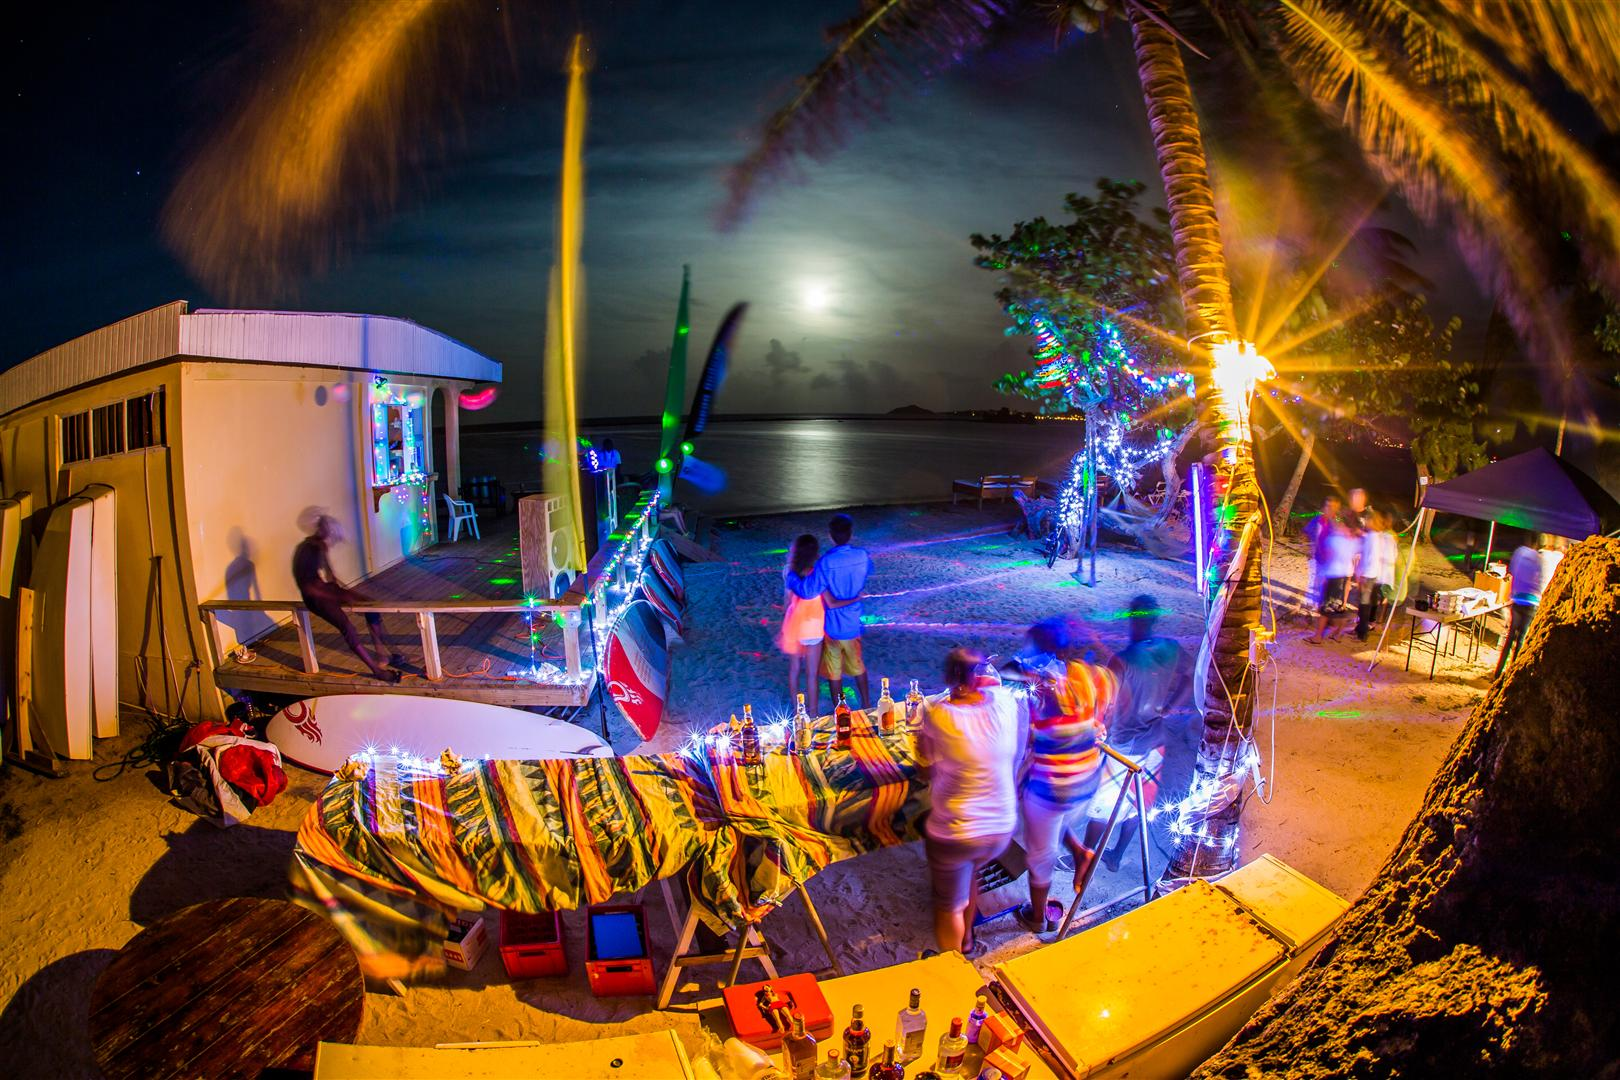 Union Island Full moon party 2014-2015 schedule